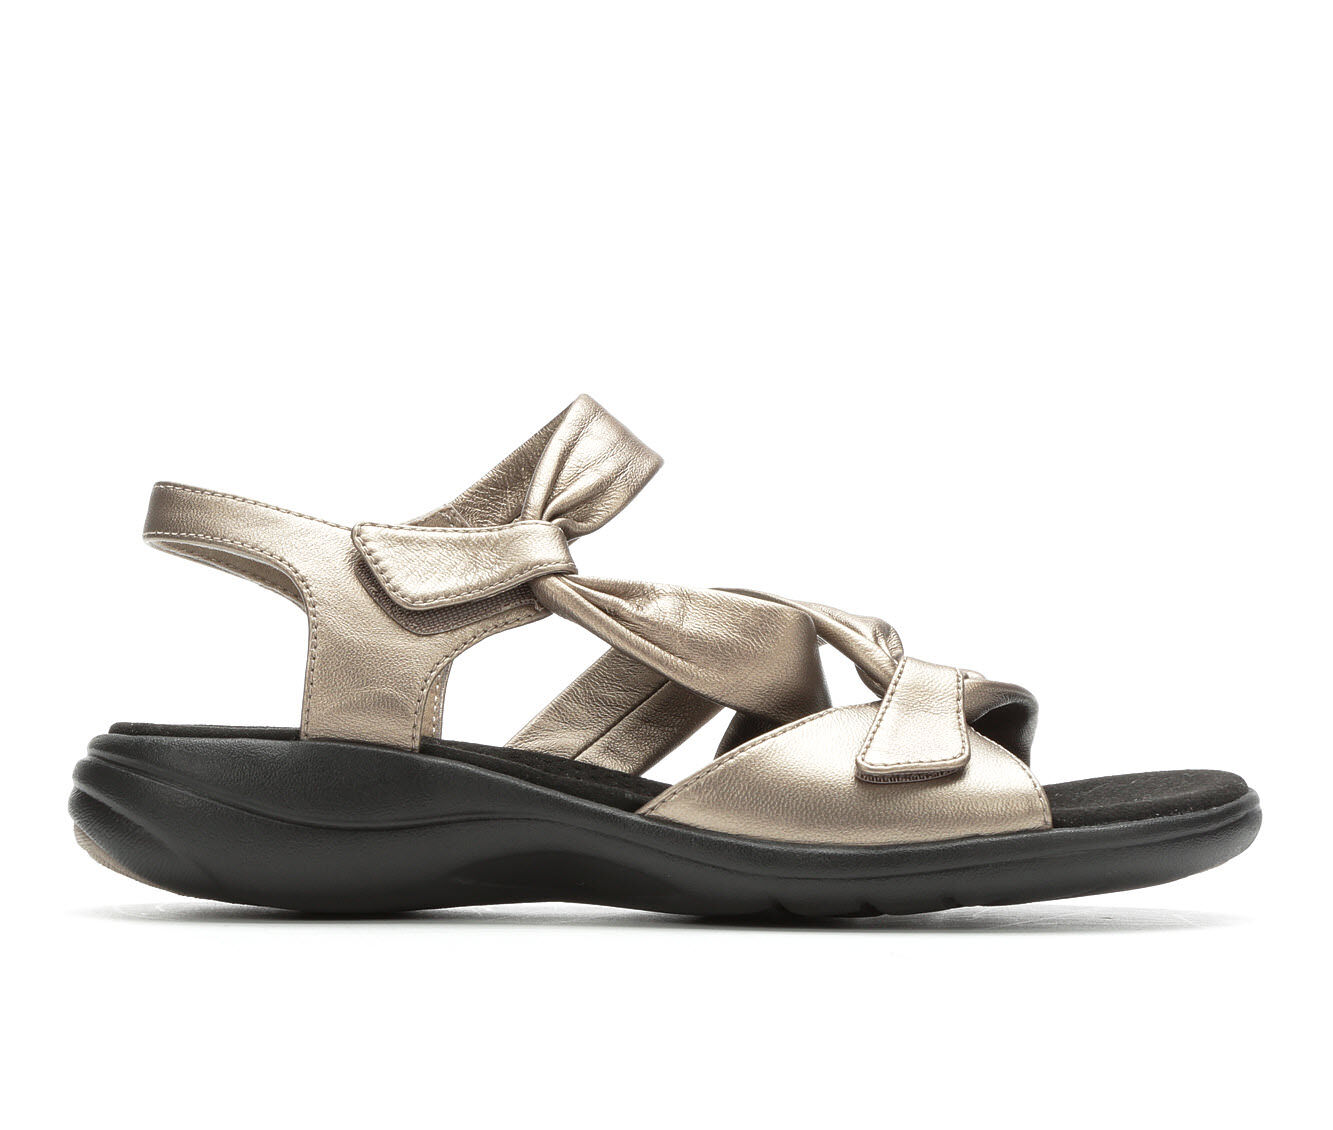 Women's Clarks Saylie Moon Contemporary Sandals cheap real TpsUPH